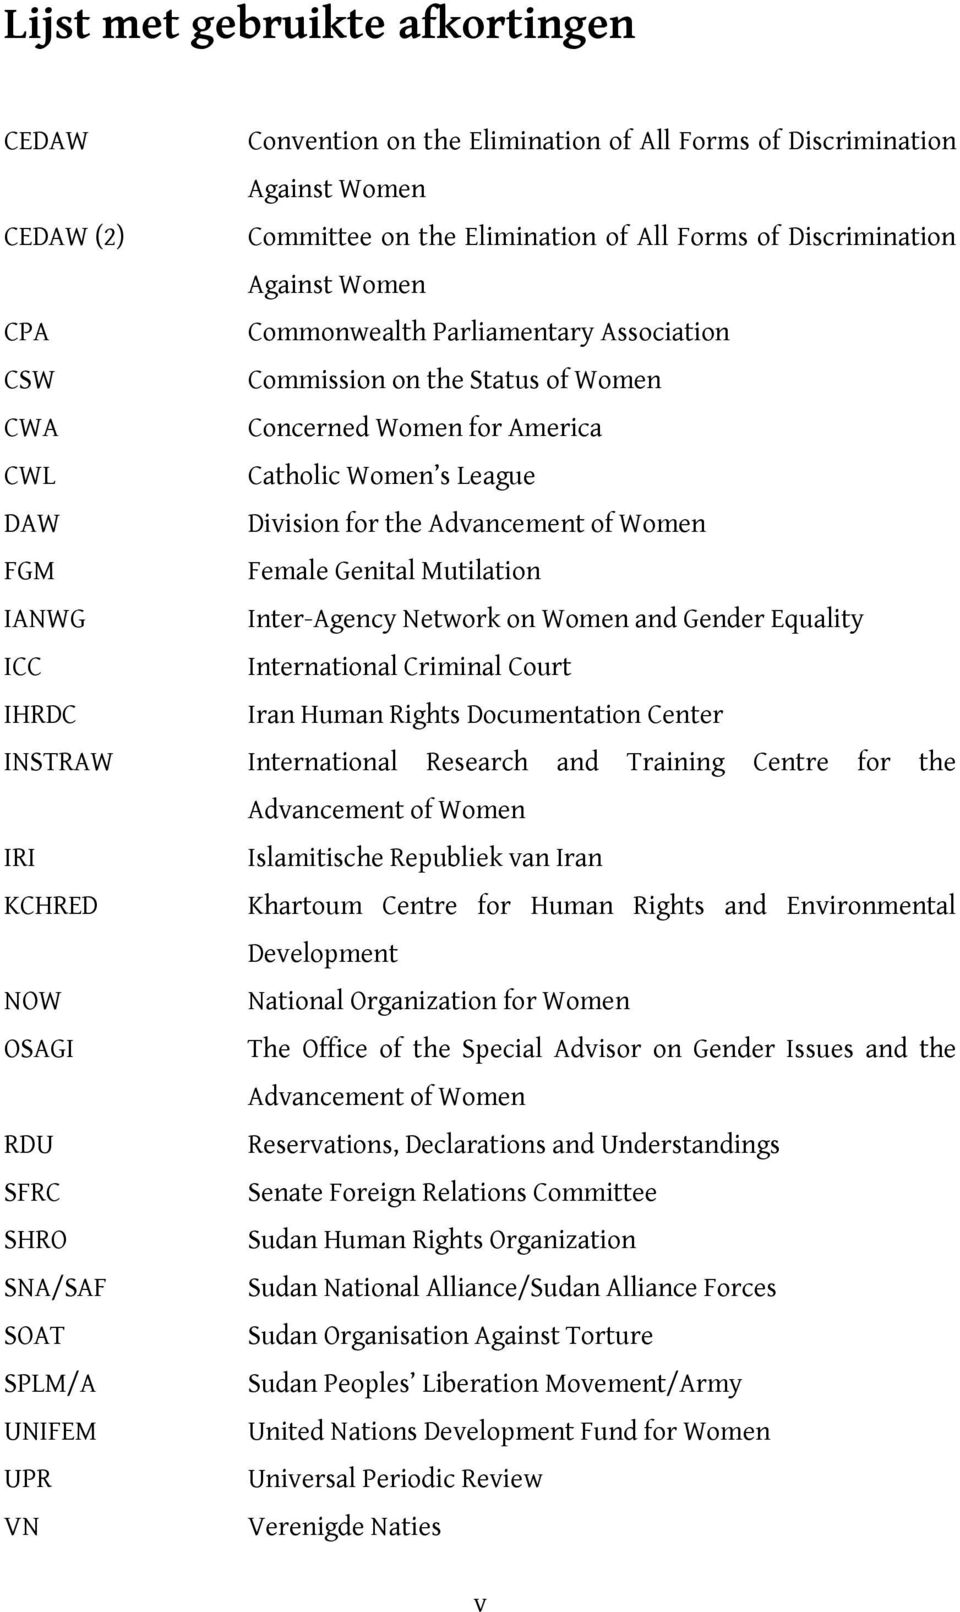 Genital Mutilation IANWG Inter-Agency Network on Women and Gender Equality ICC International Criminal Court IHRDC Iran Human Rights Documentation Center INSTRAW International Research and Training